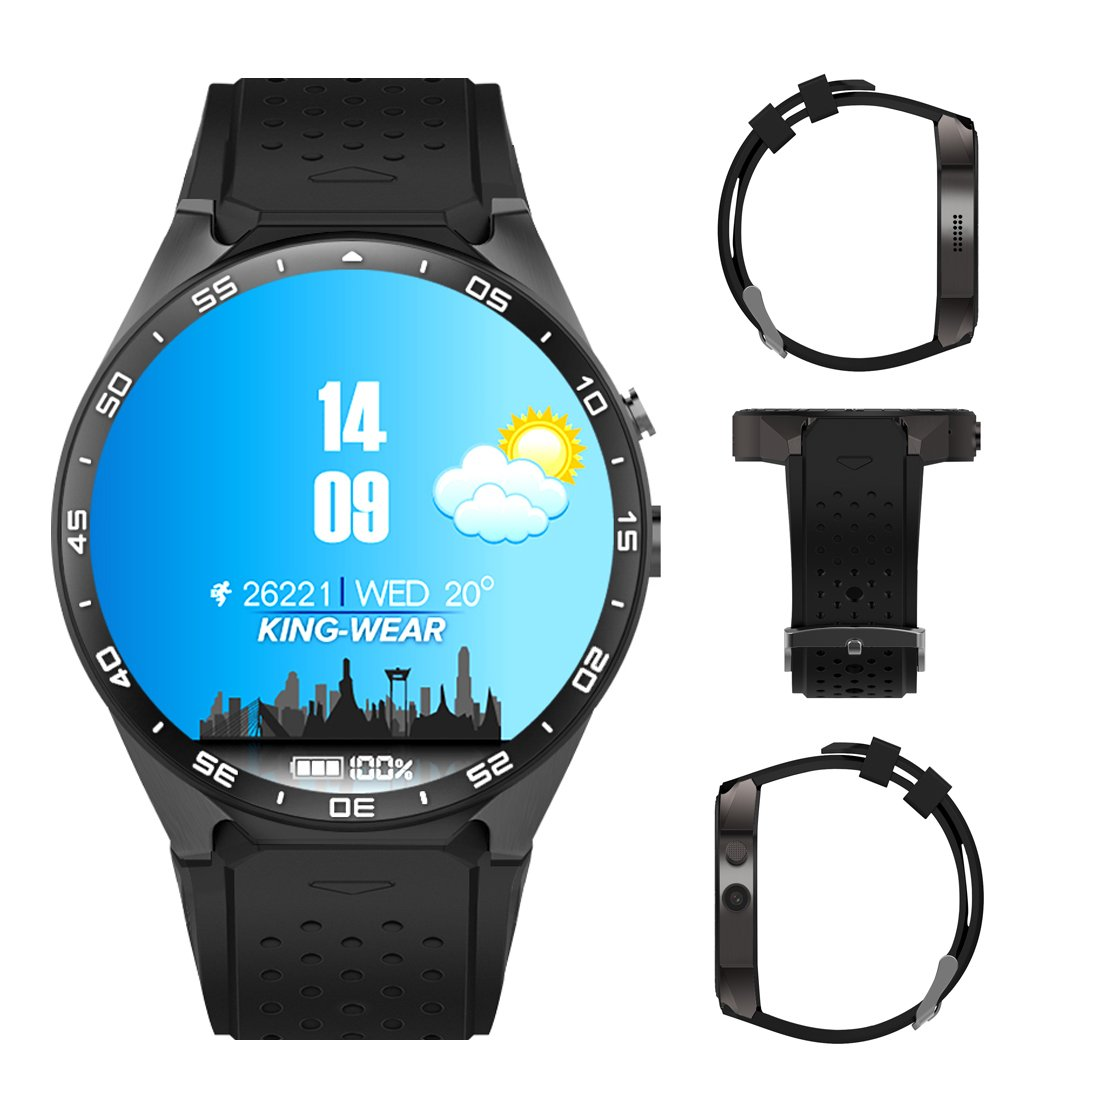 Kingwear 3G Smart Watch